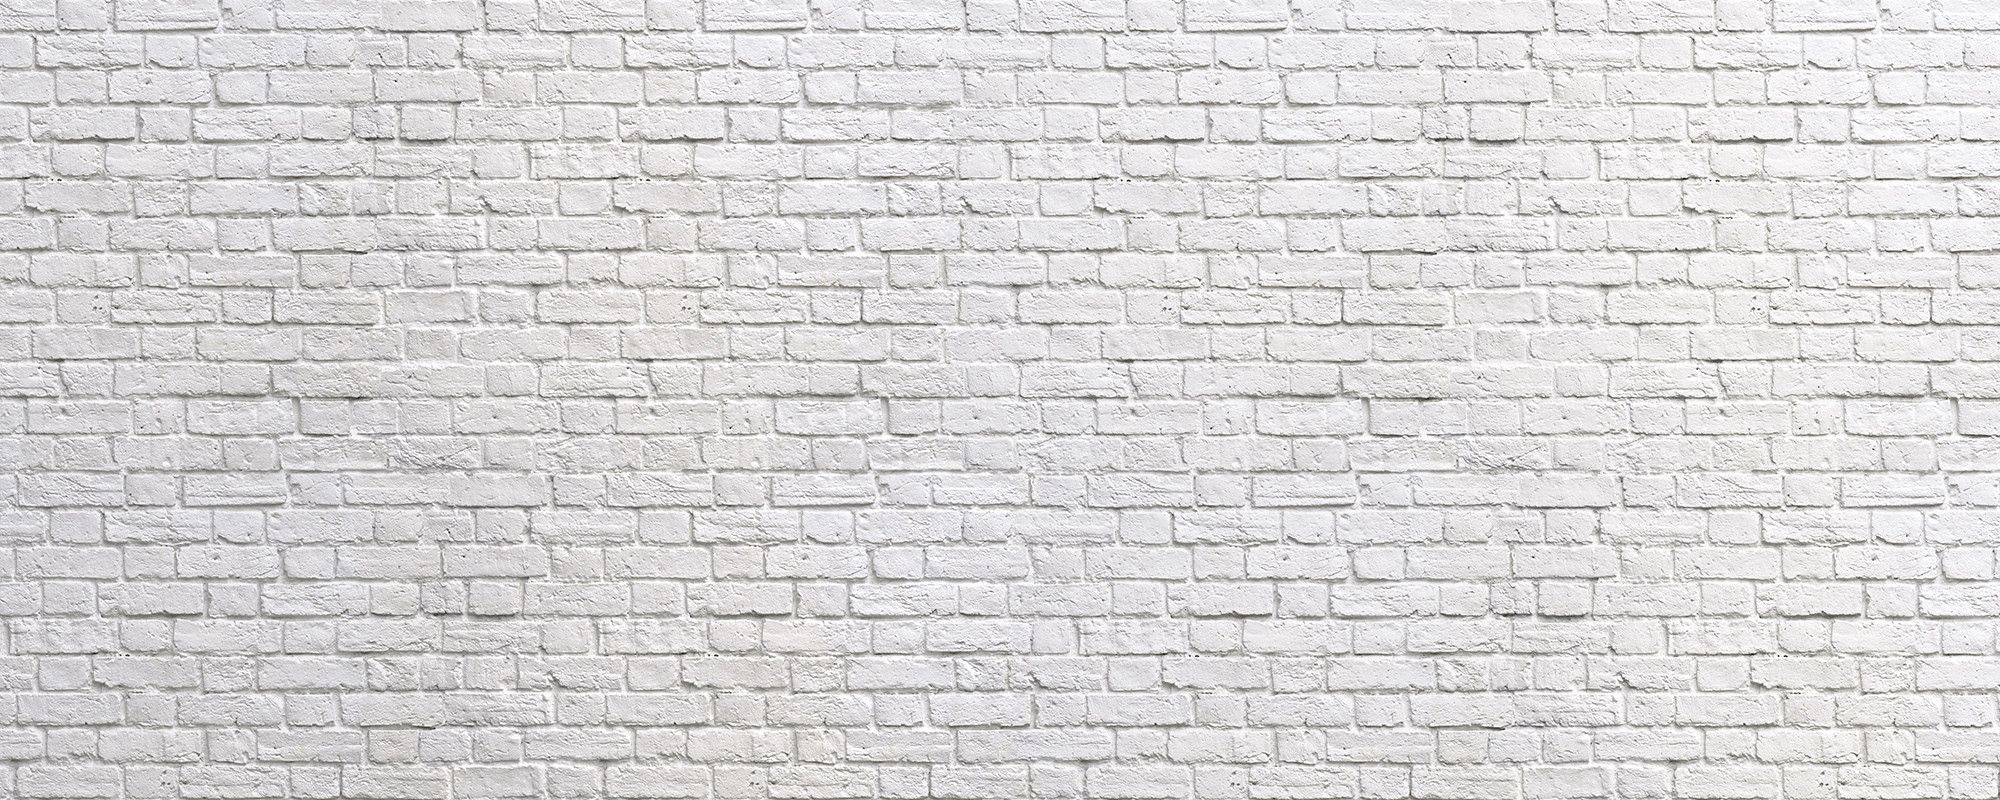 Brick Wall White Wall Mural & Wallpaper